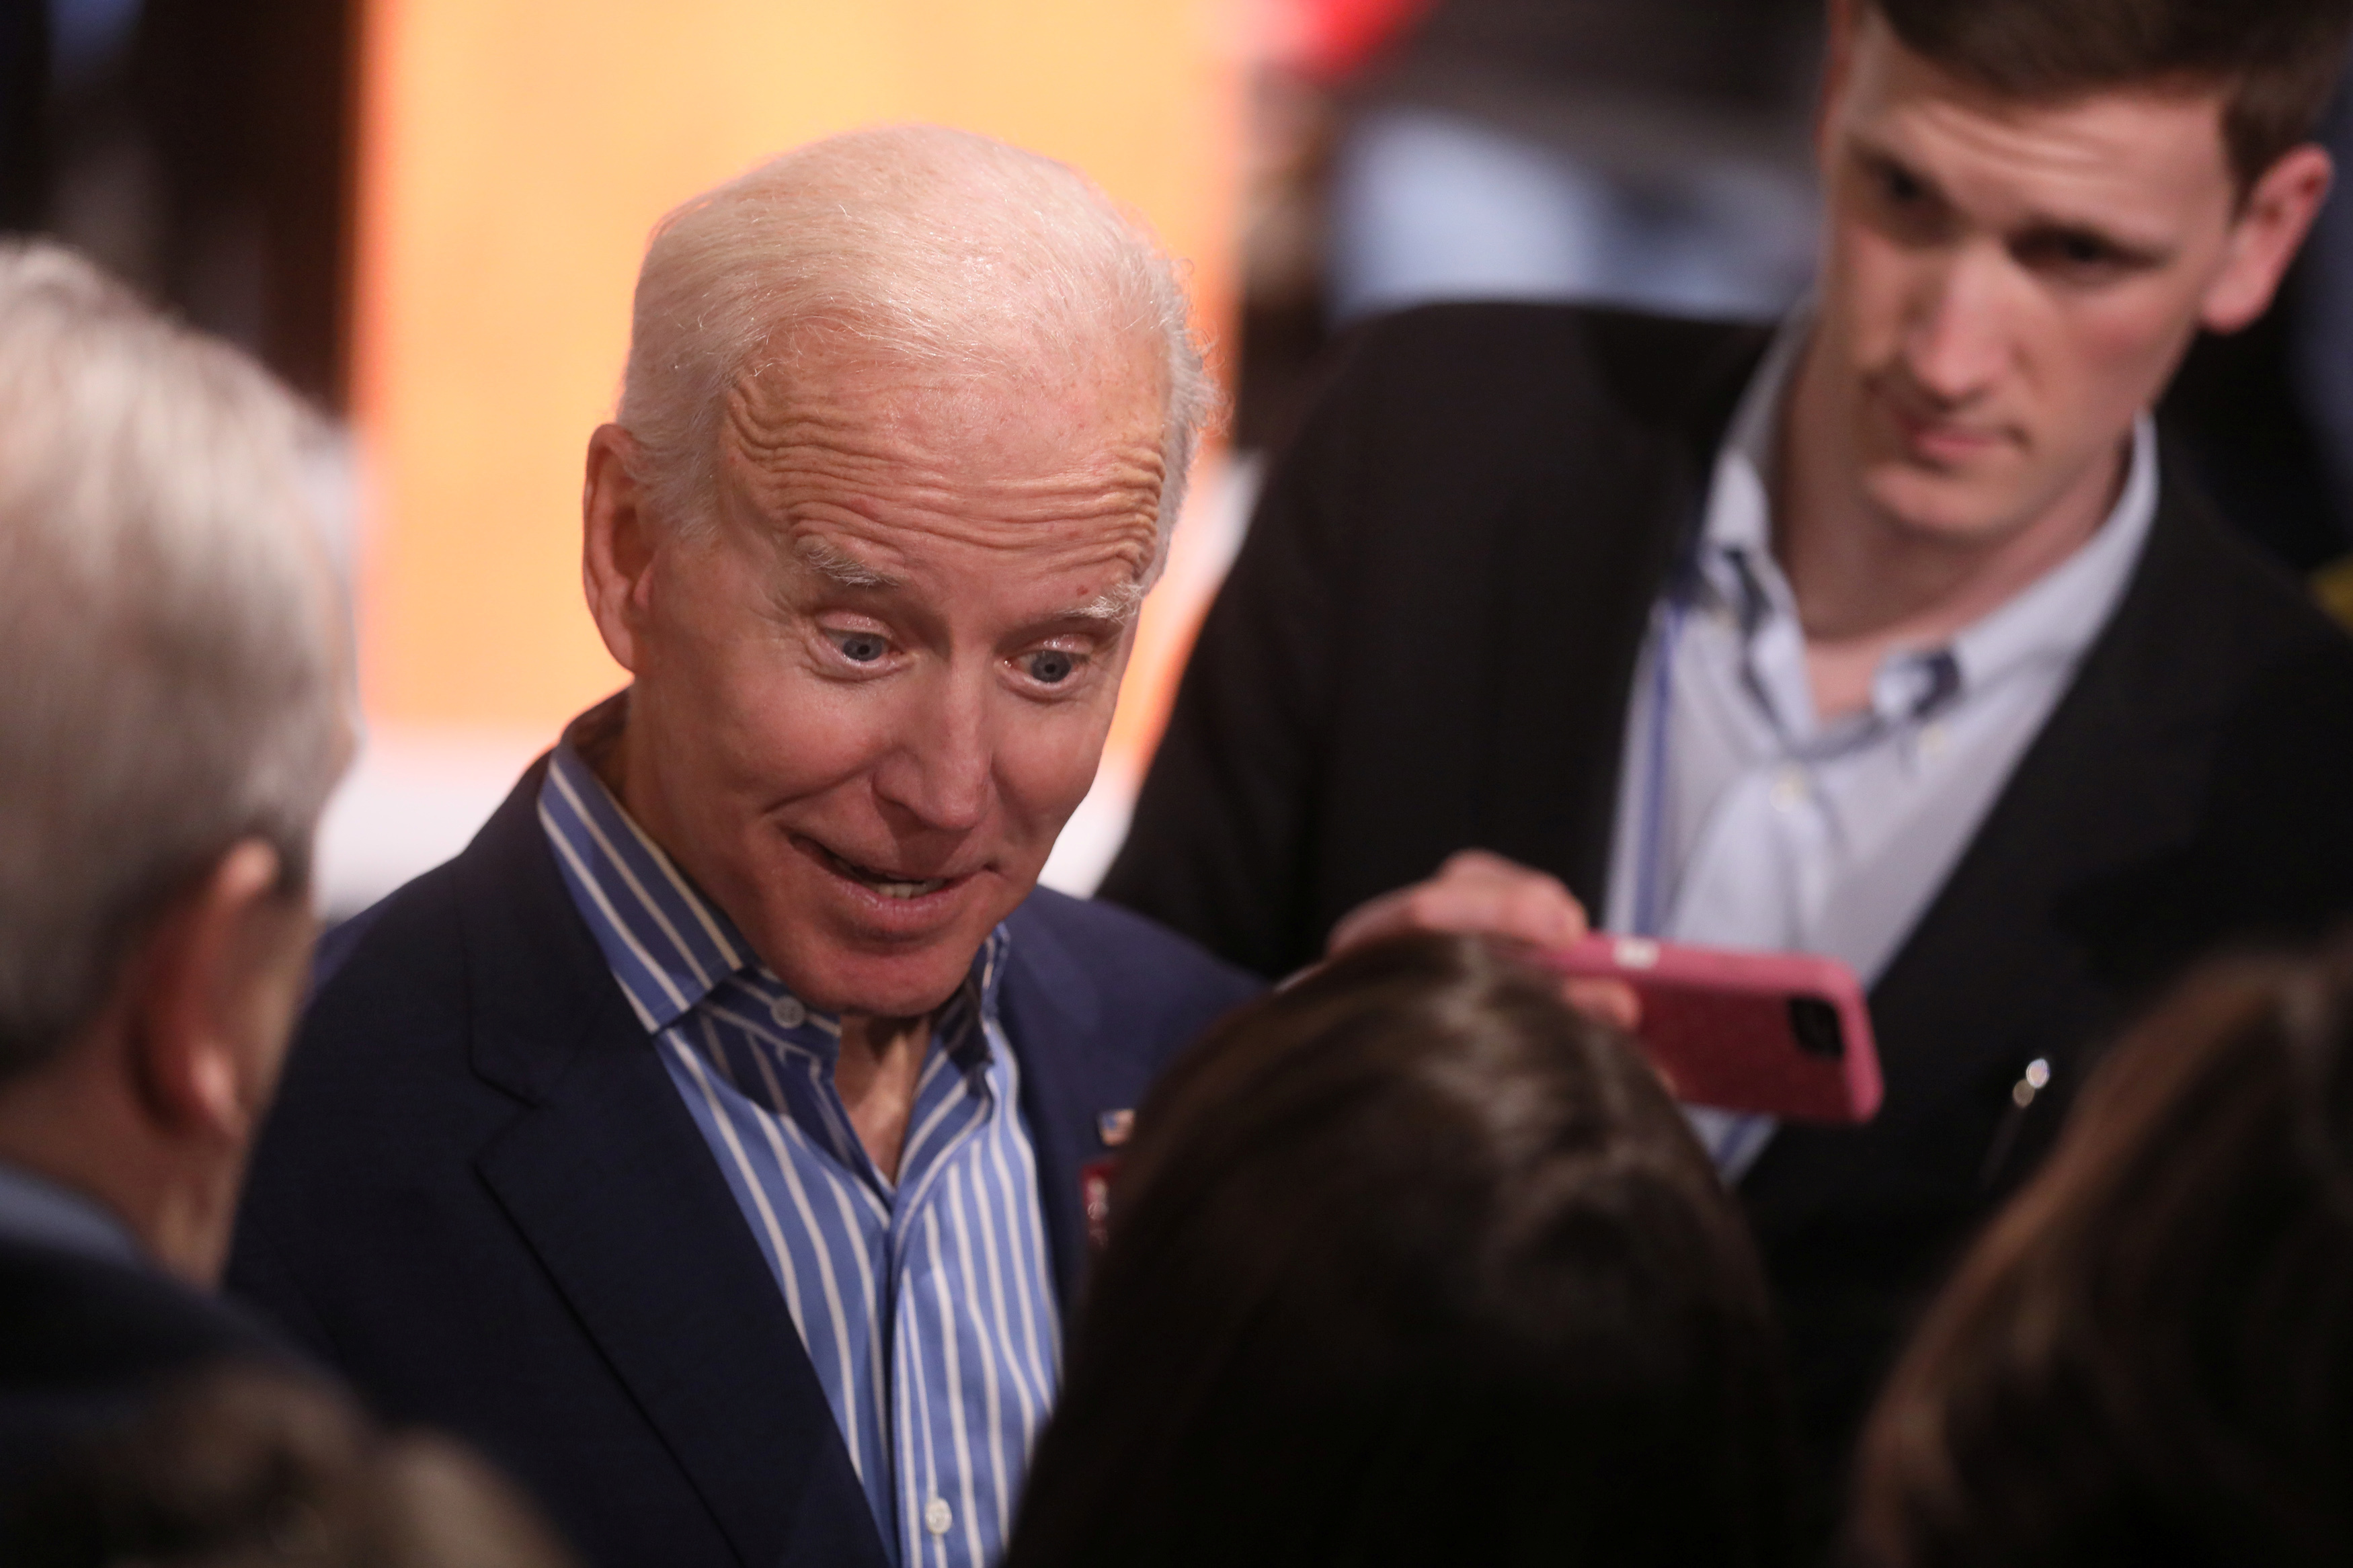 U.S. Democratic presidential candidate Biden greets people in the crowd after a campaign stop in Des Moines, Iowa